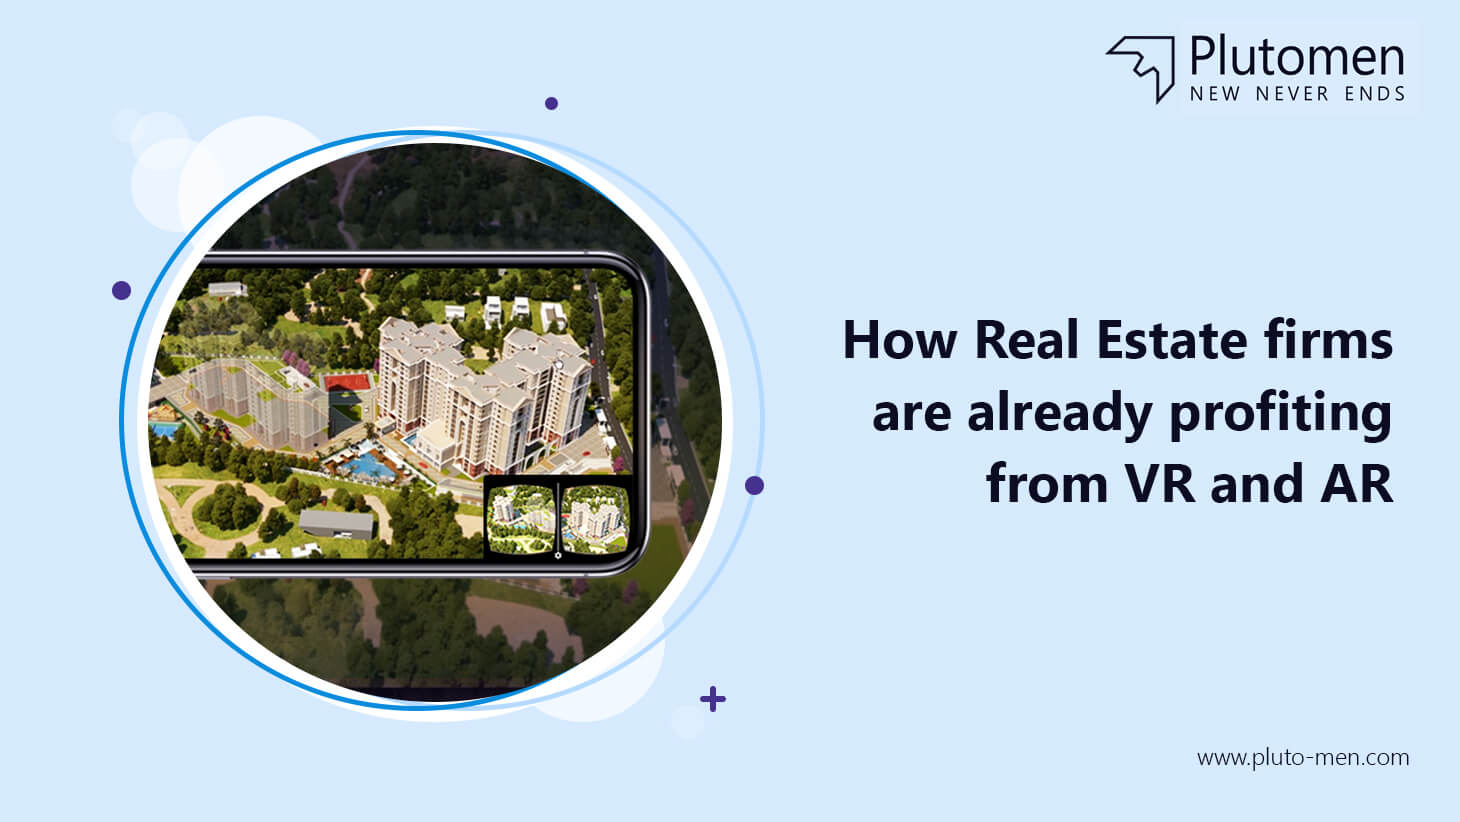 How real estate firms are already profiting from VR and AR